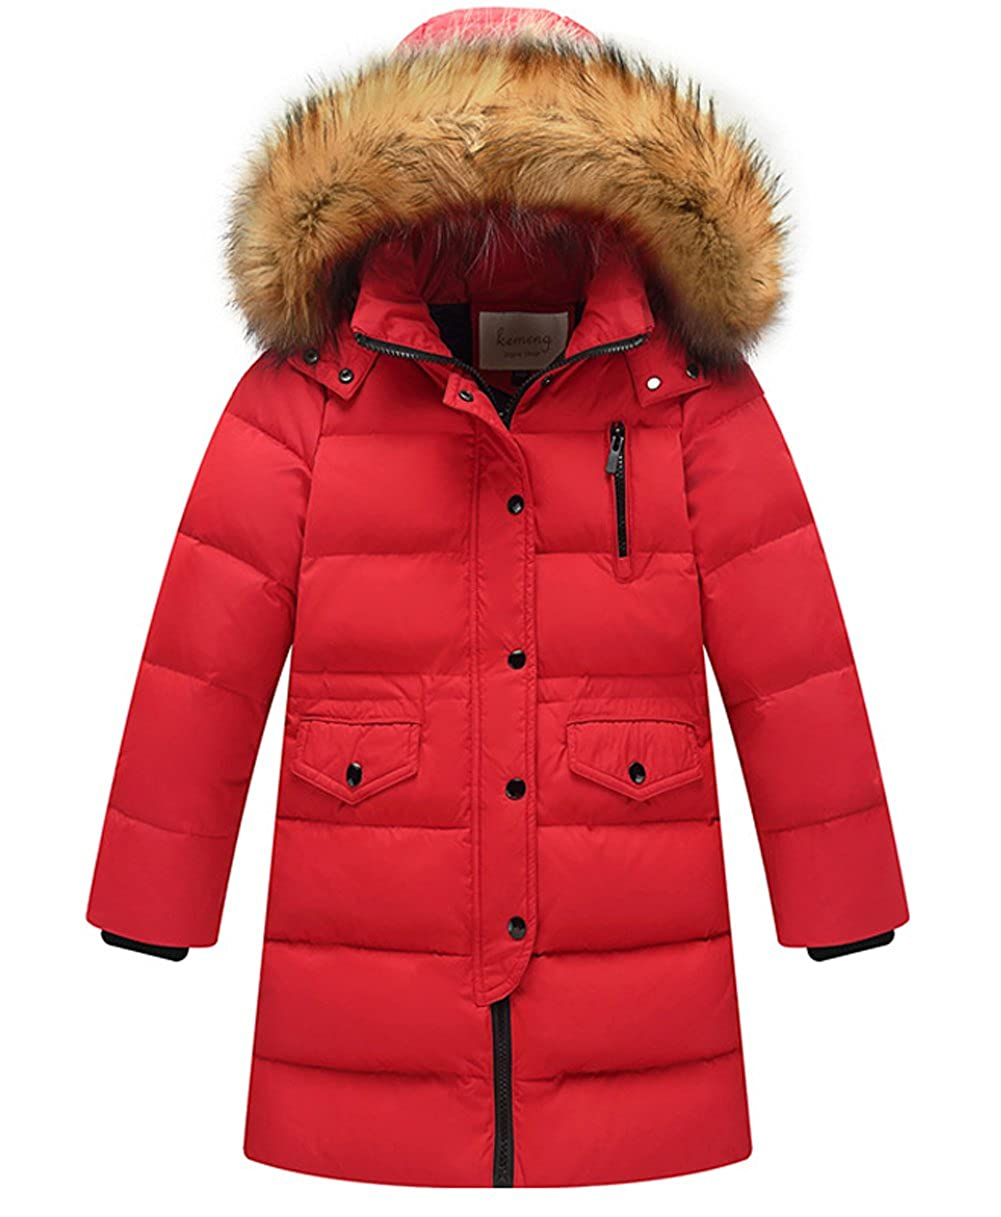 Big Girls' Winter Parka Down Coat Puffer Jacket Padded Overcoat with Fur Hood